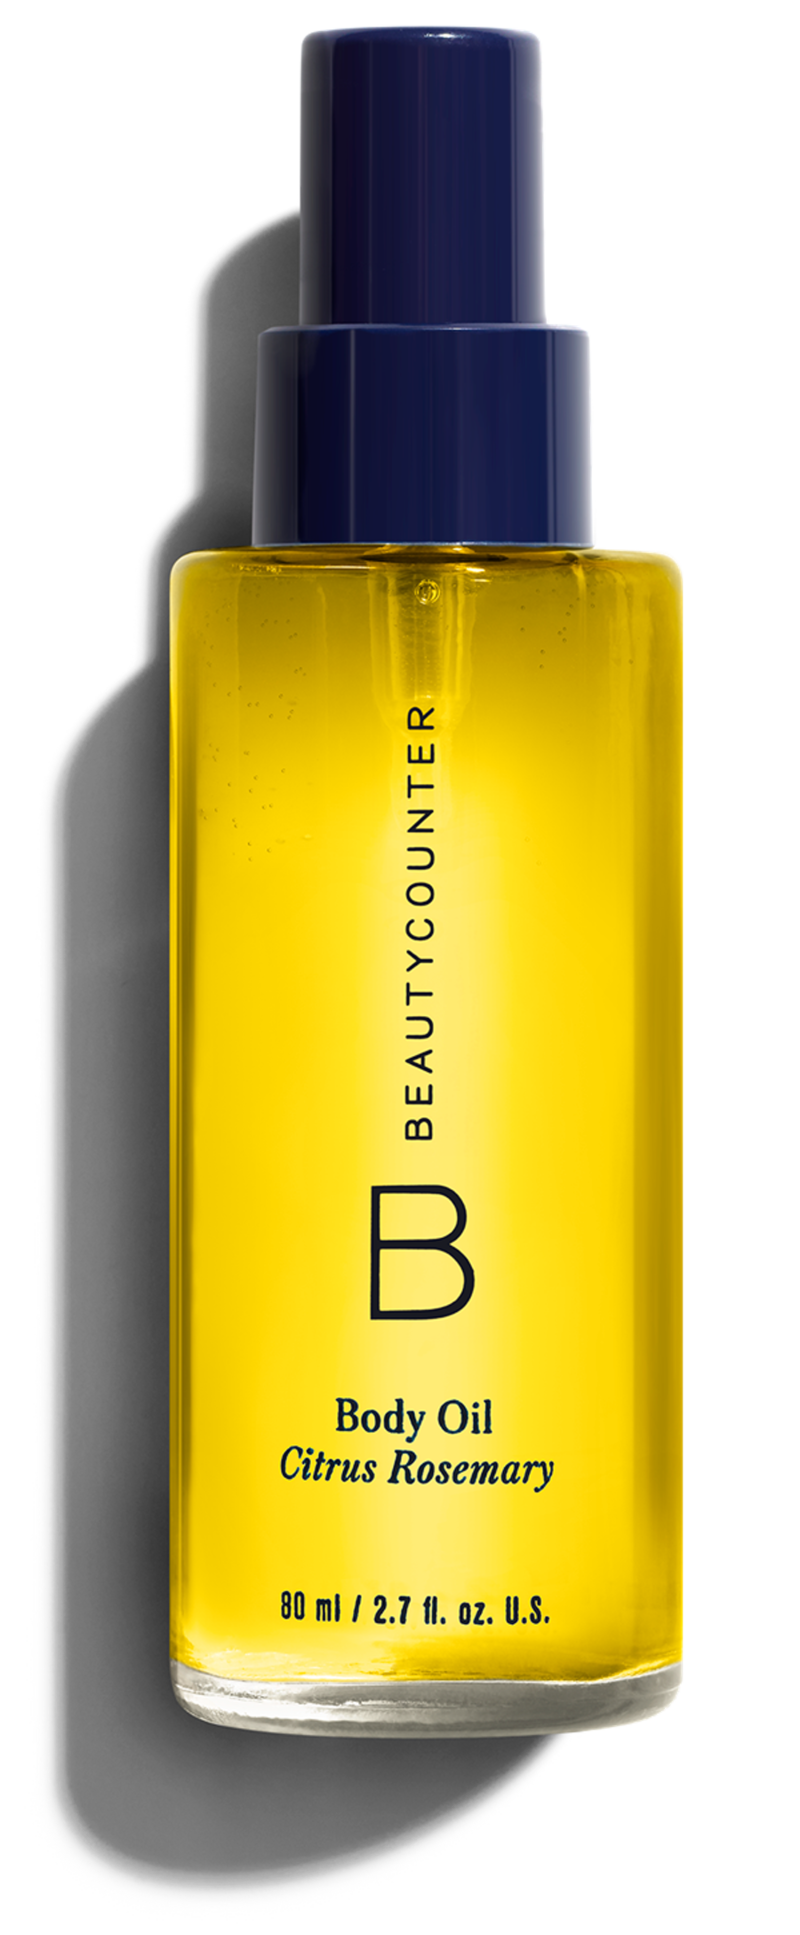 beautycounter-body oil-citrus rosemary